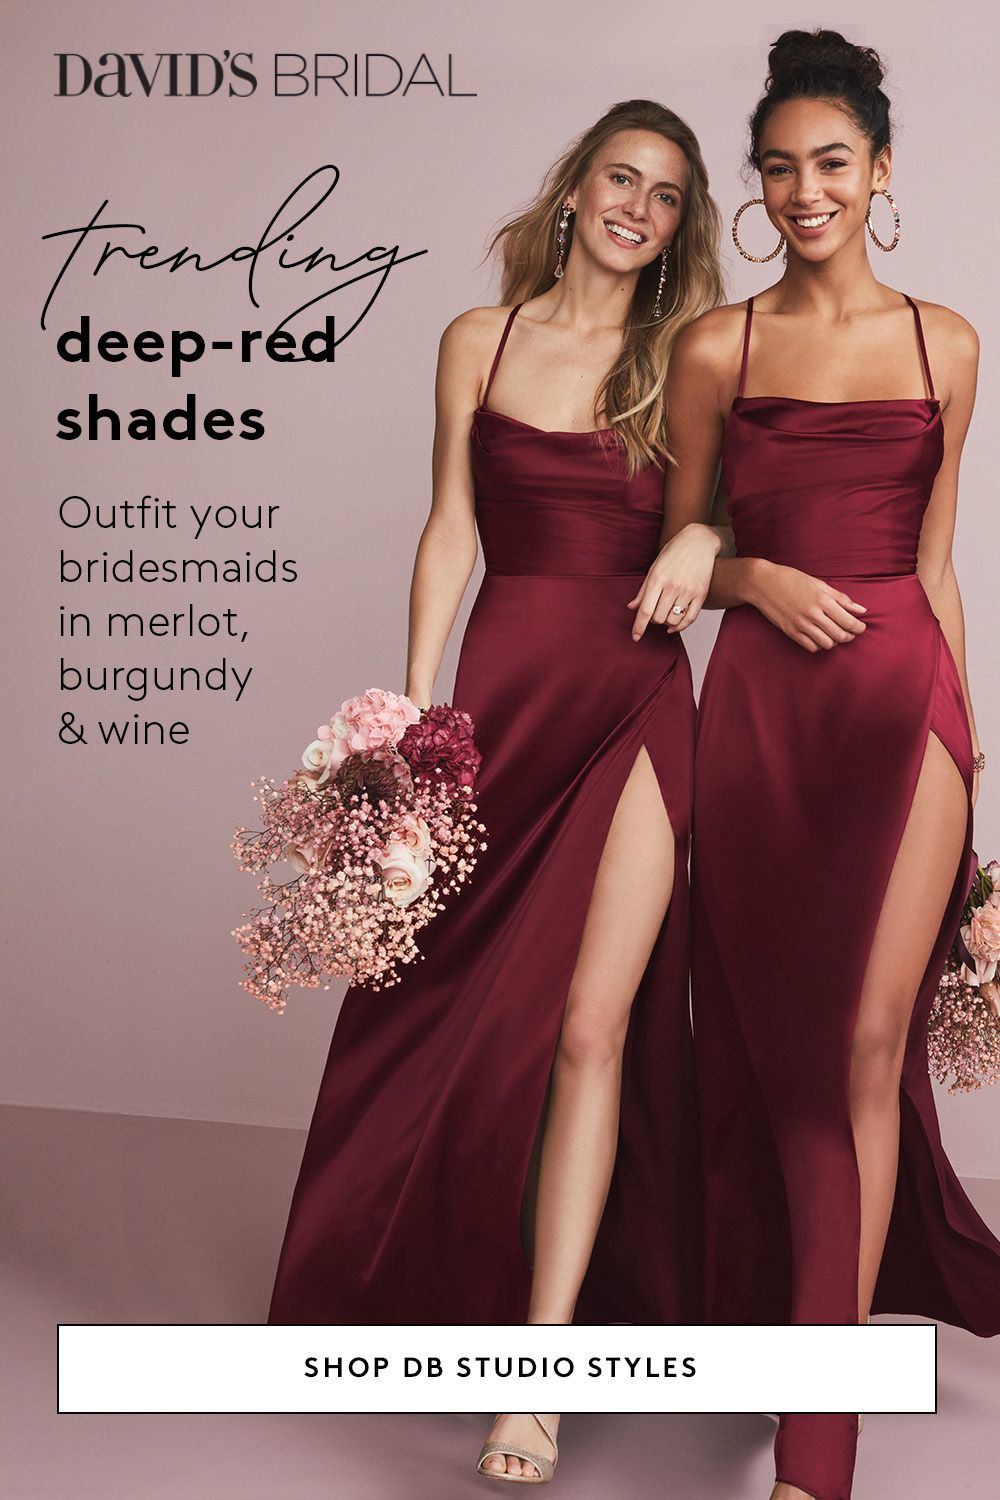 Wine Shades For Maids Are Trending And David S Bridal Has Them All Delicious Hues Of Merlot And Burgund In 2020 Bridesmaid Wedding Bridesmaid Dresses Wedding Dresses